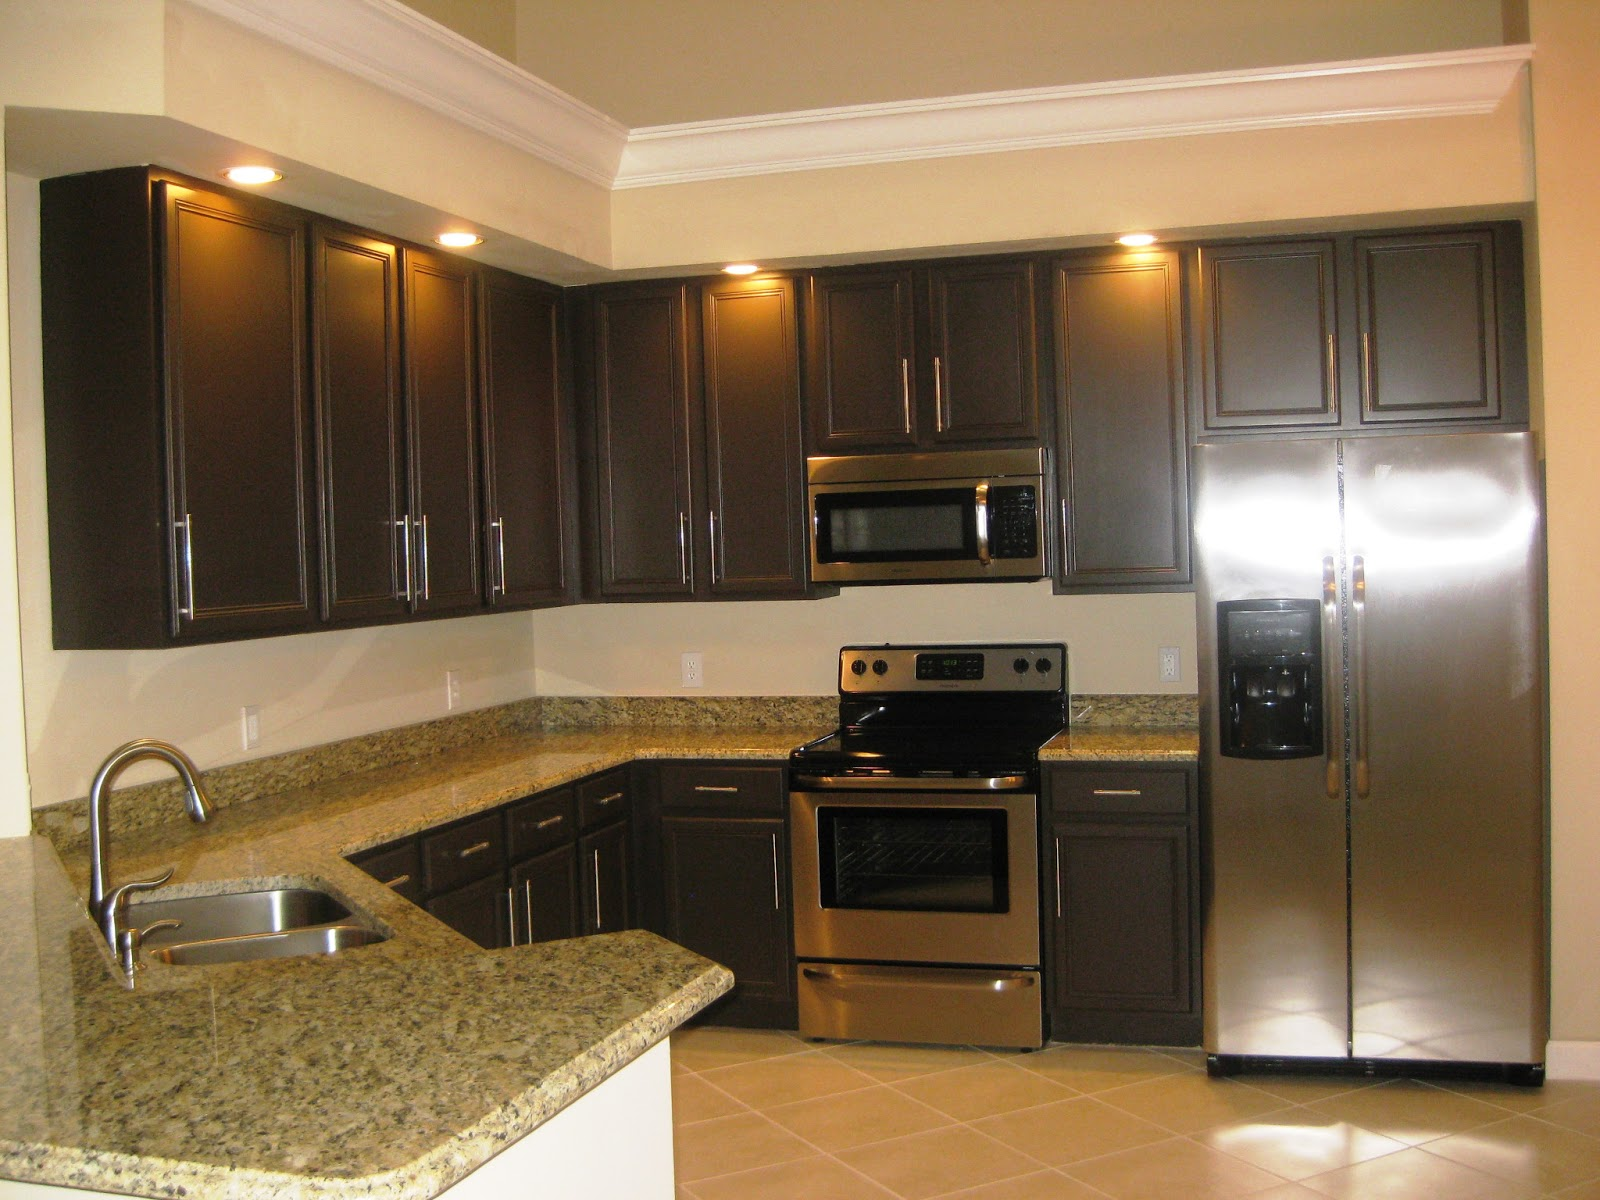 Best Kitchen Cabinet Paint Update Your Kitchen Cabinets With Some Paint Patience And Of Coarse